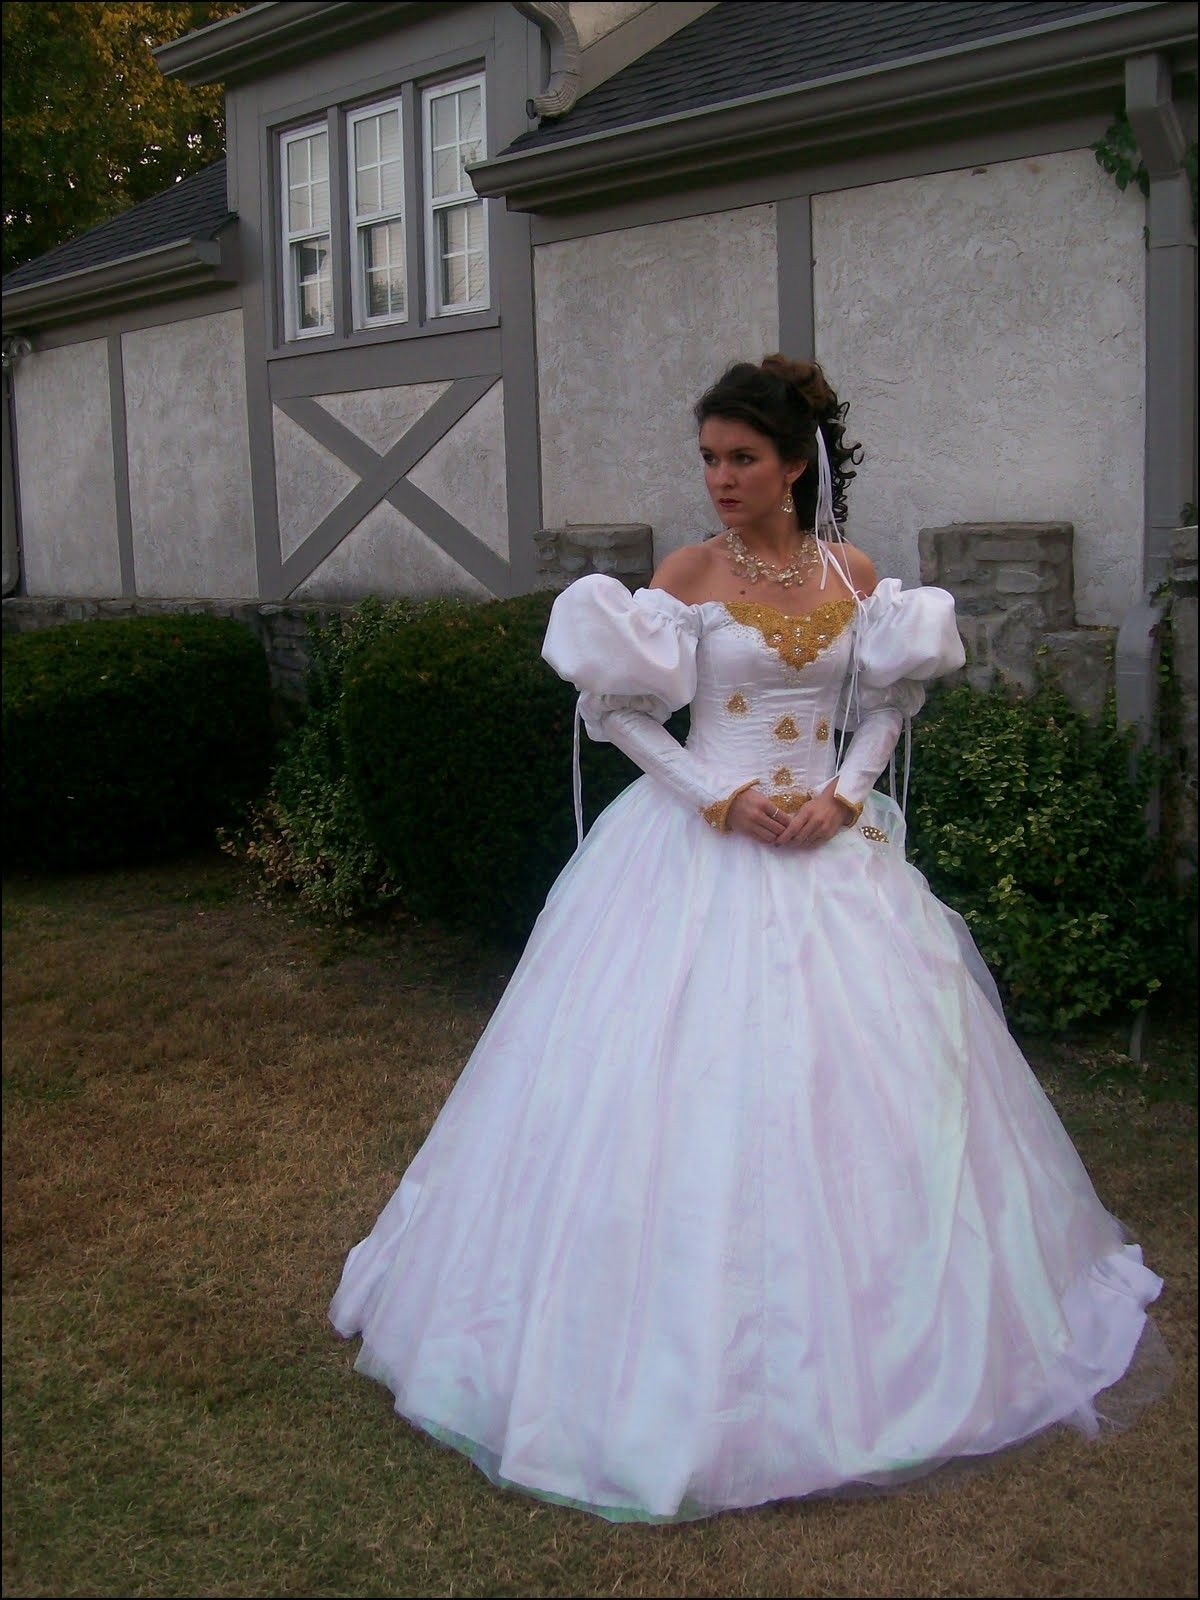 Labyrinth Ball Gown Costume | A Fashion | Pinterest | Ball gowns ...